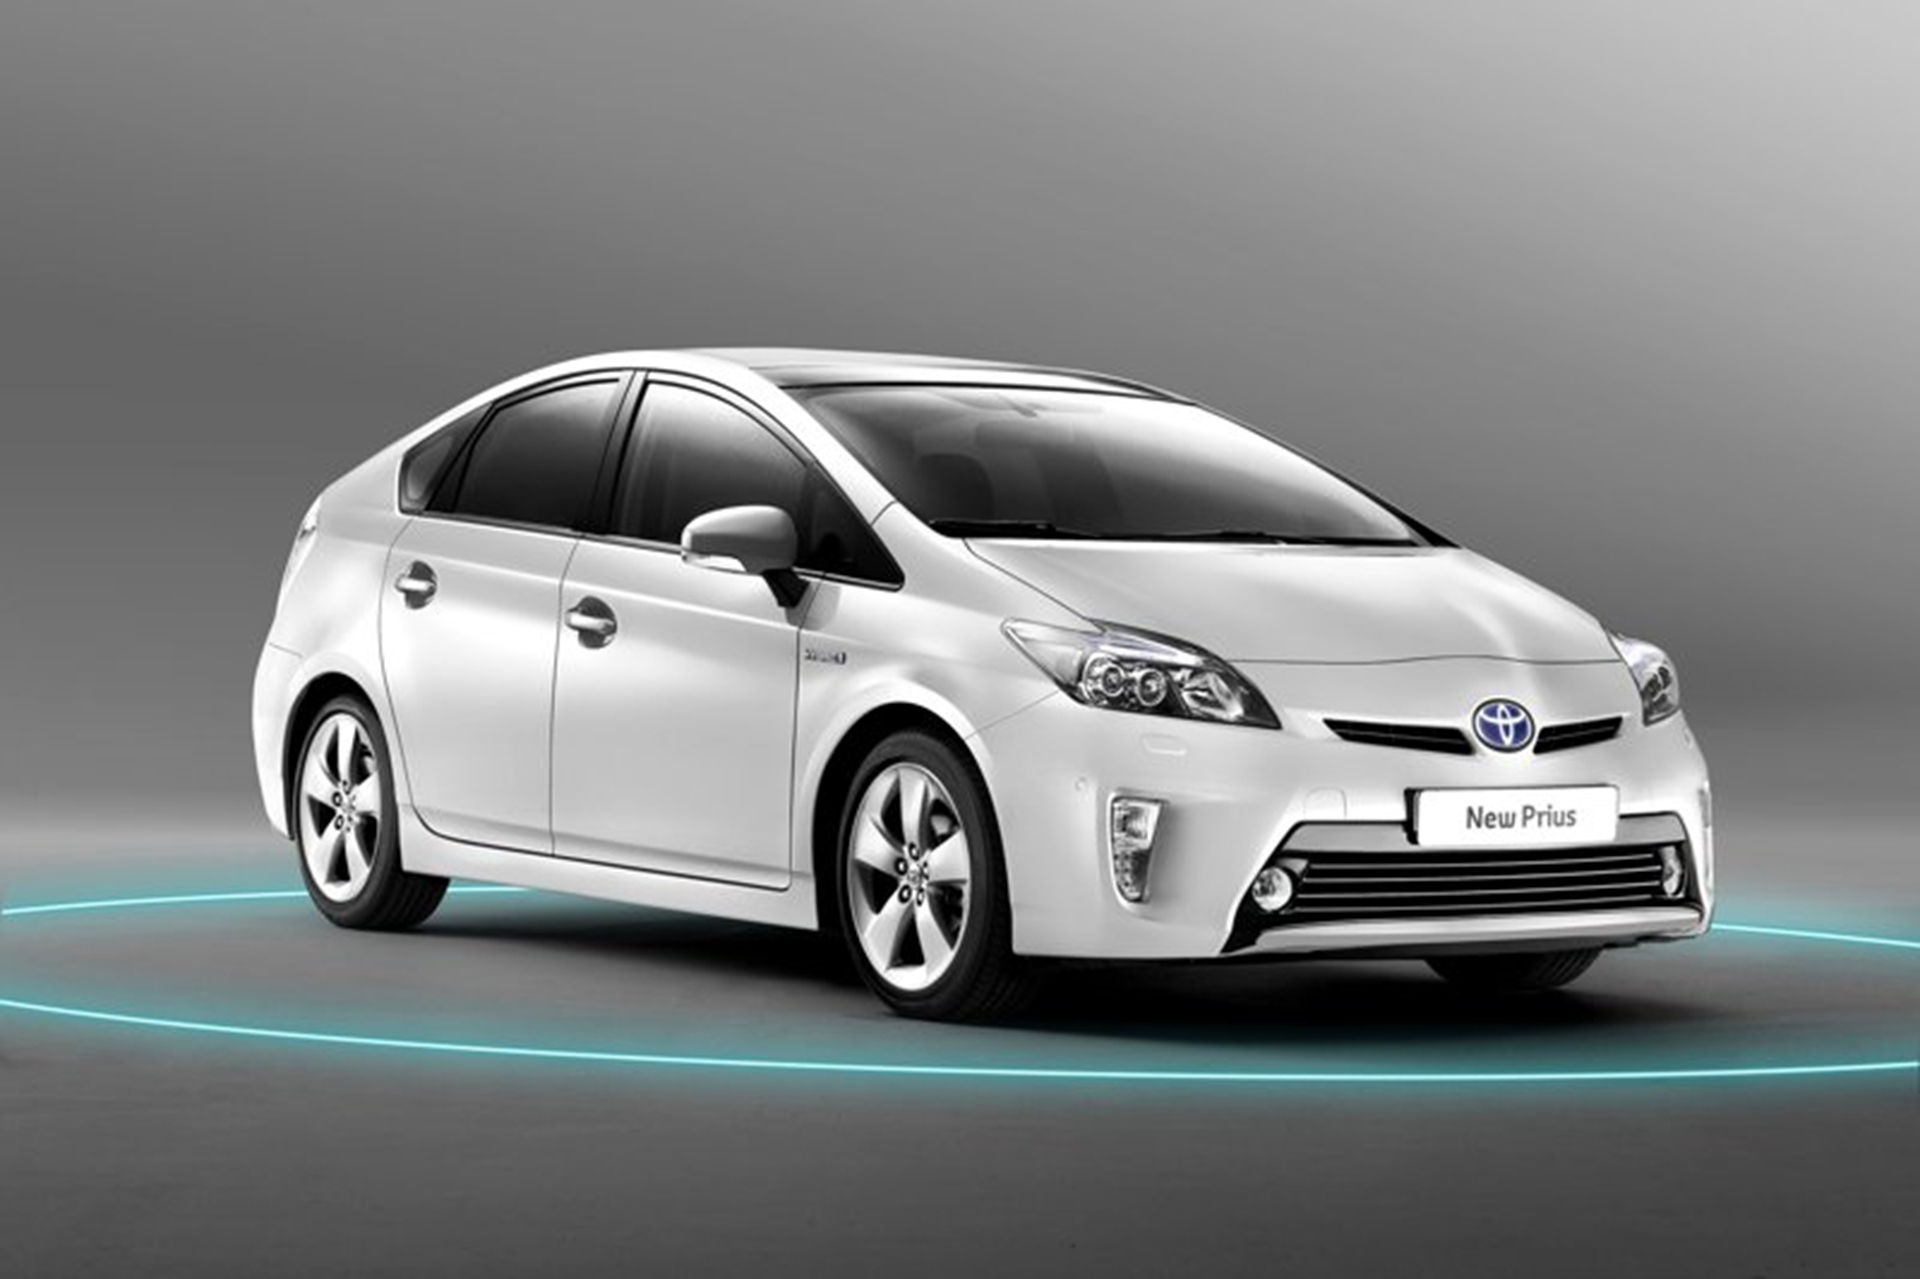 Toyota Prius Cars 2011 front